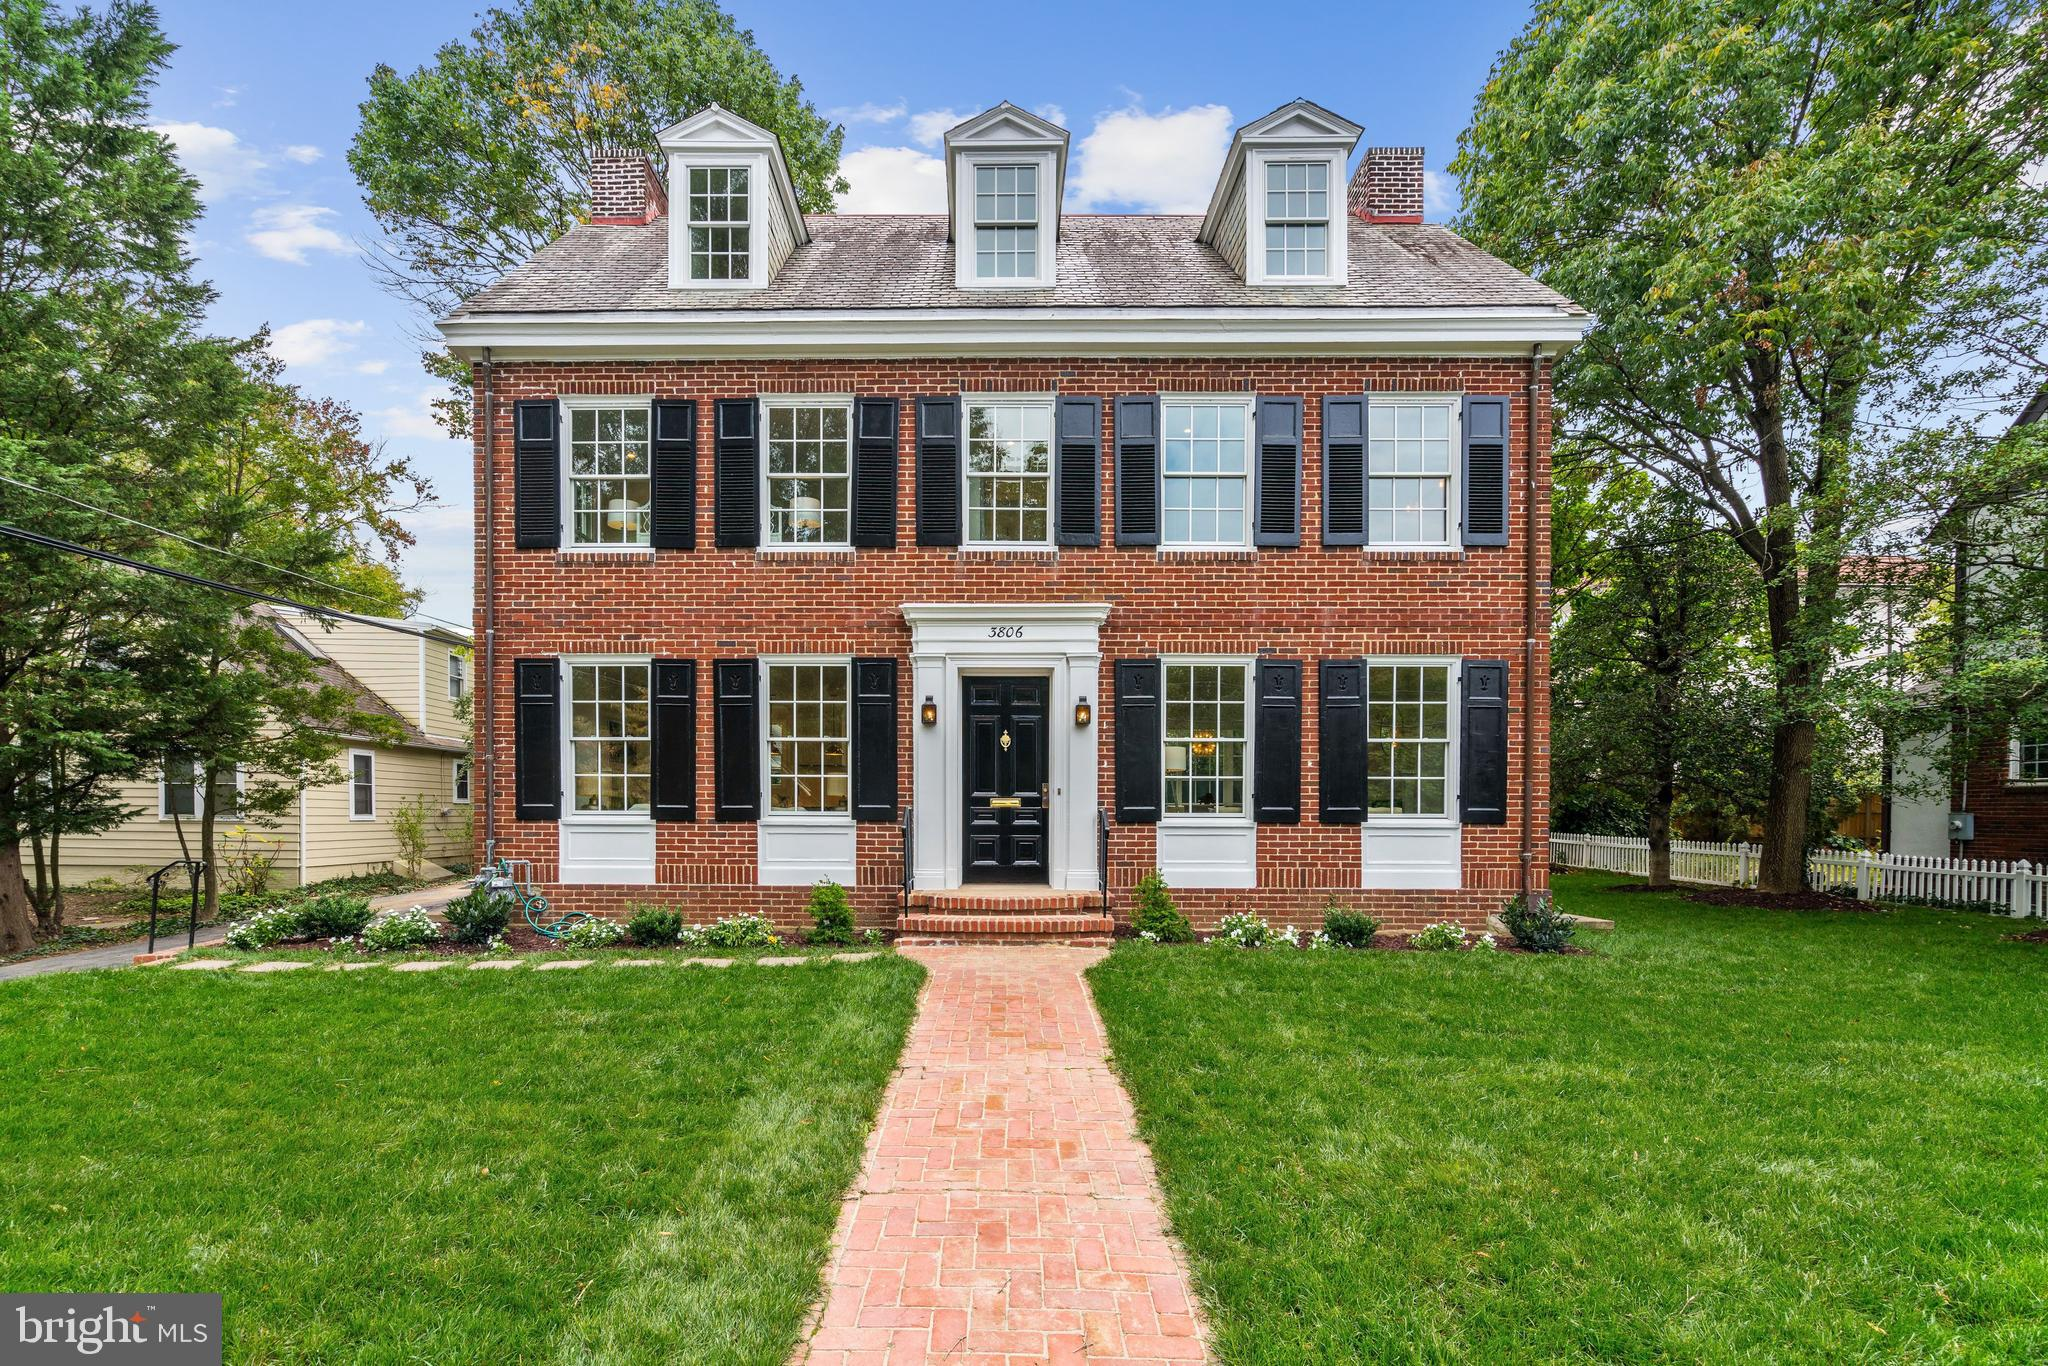 3806 RAYMOND STREET, CHEVY CHASE, MD 20815